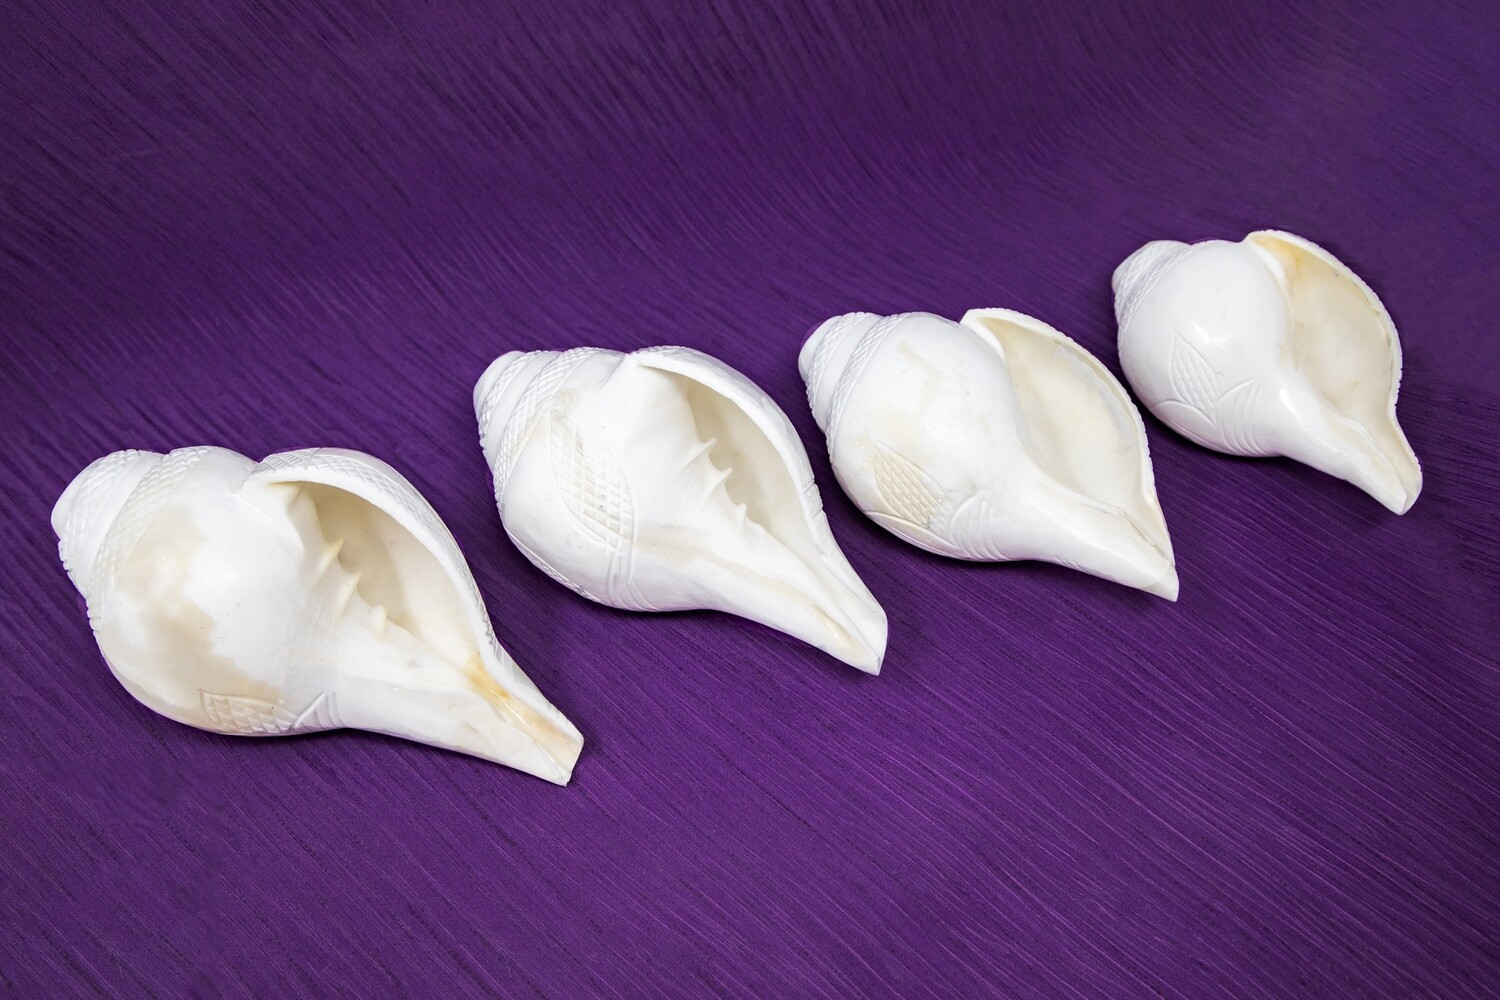 Blowing Conch / Shankha, Right hand